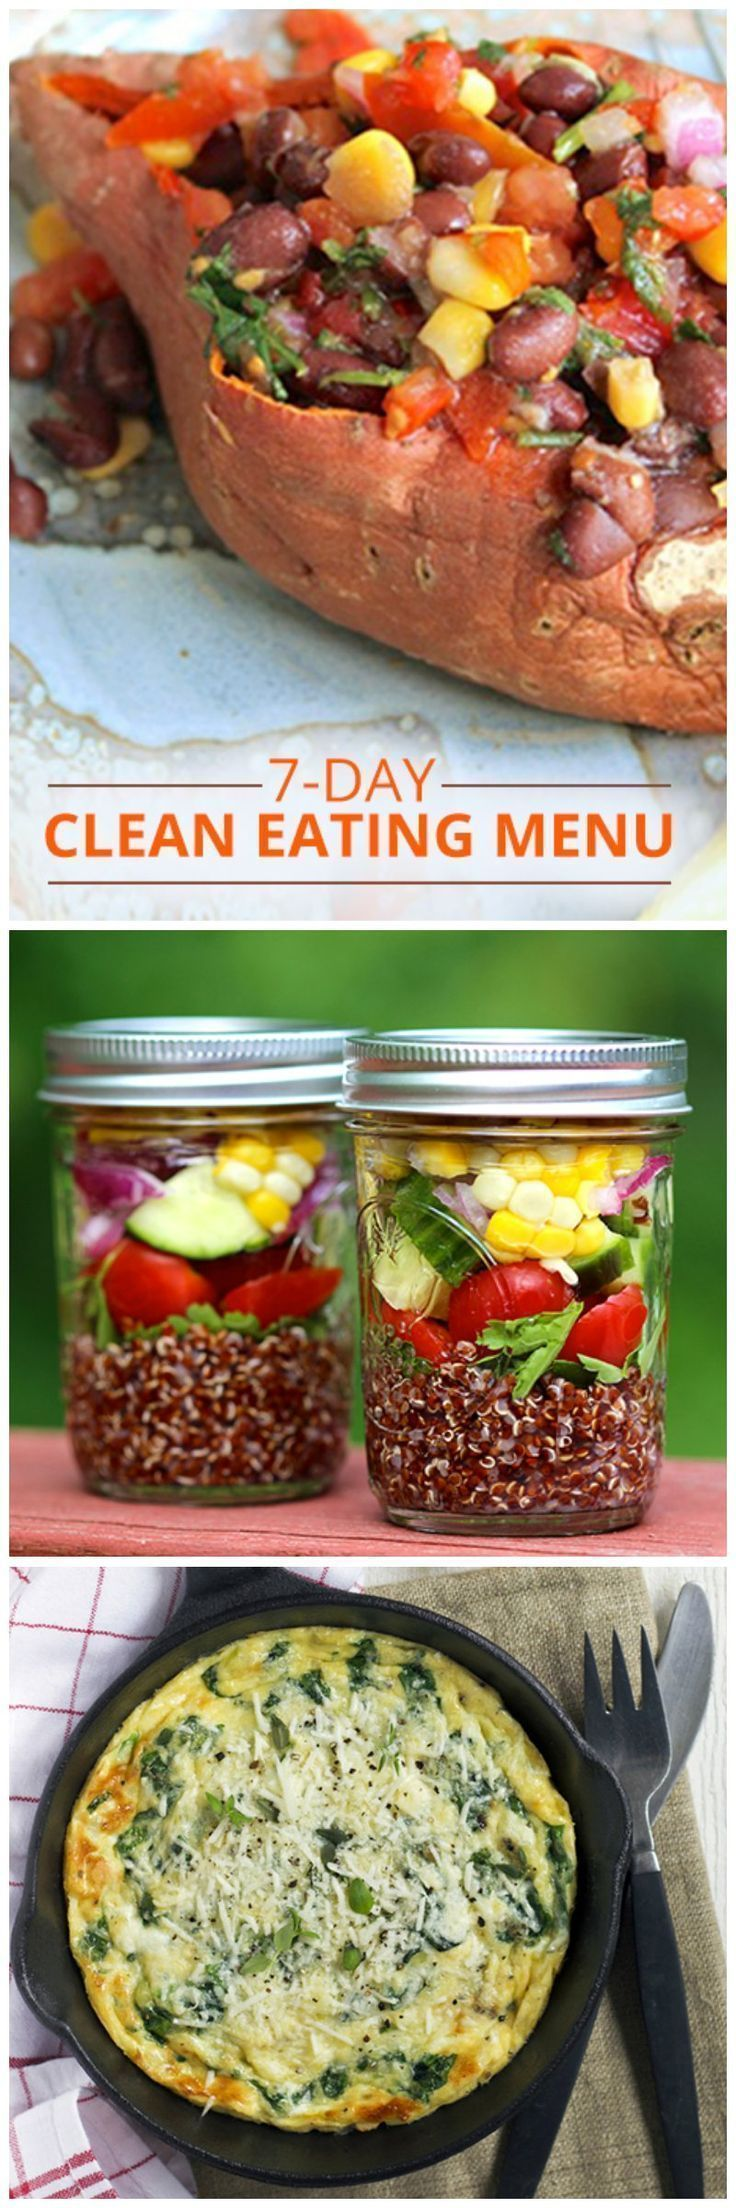 Our 7 Day Clean Eating Menu is ideal for jump starting a healthy eating plan!